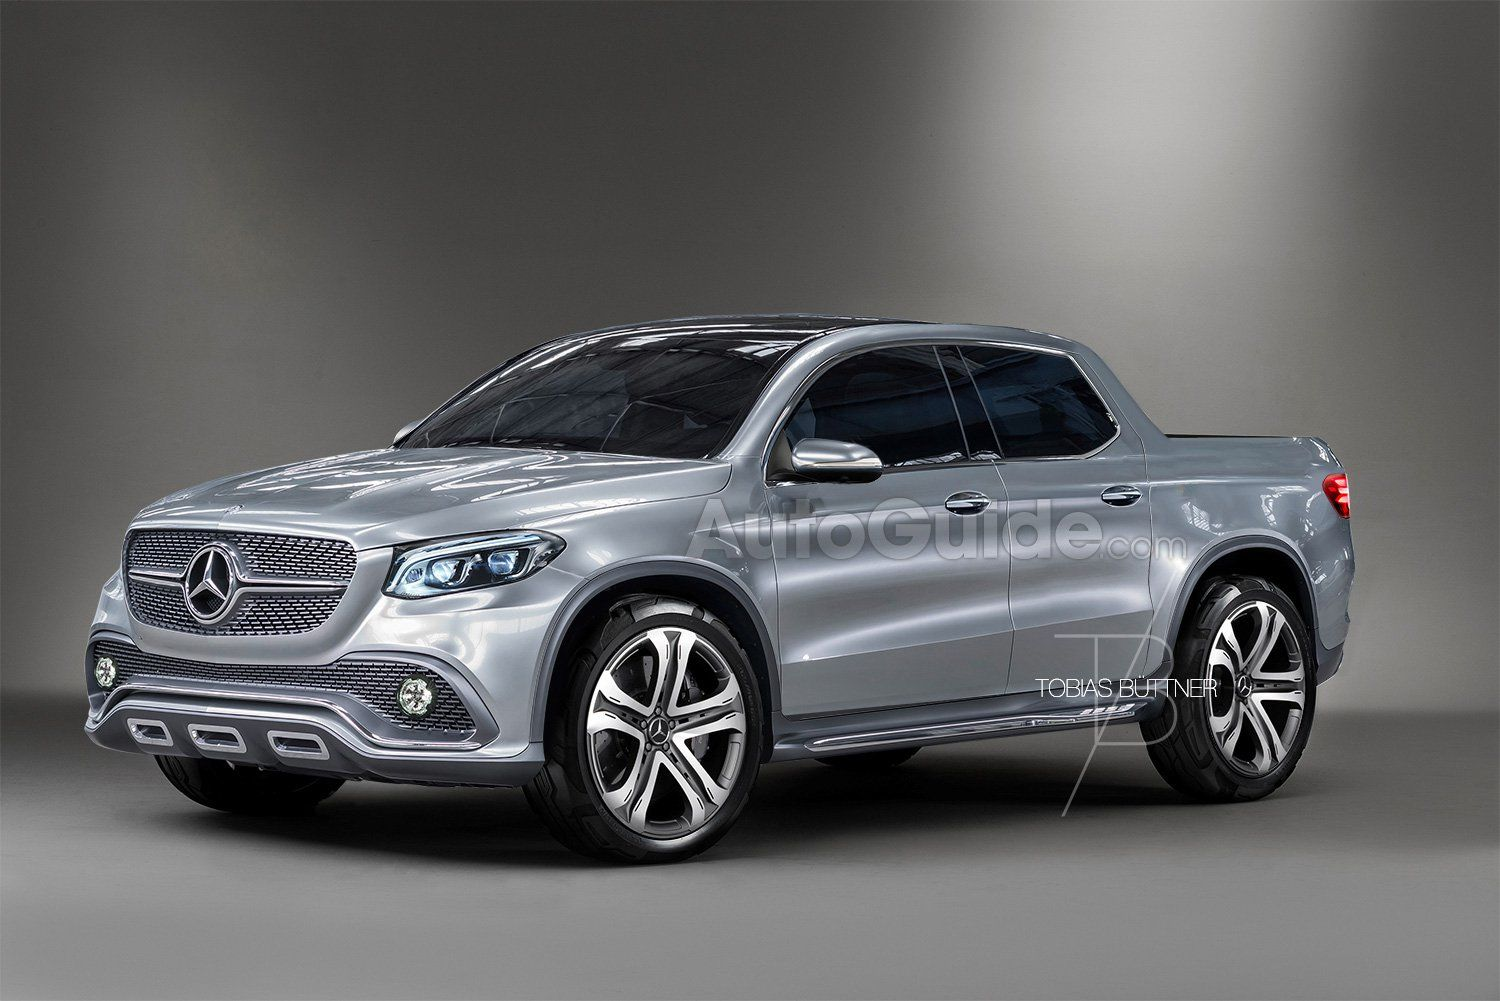 A Mercedes Benz Glt Pickup Truck Is Coming In 2017 According To Leaked Roadmap And Autoguide Has Renders On What It Could Look Like